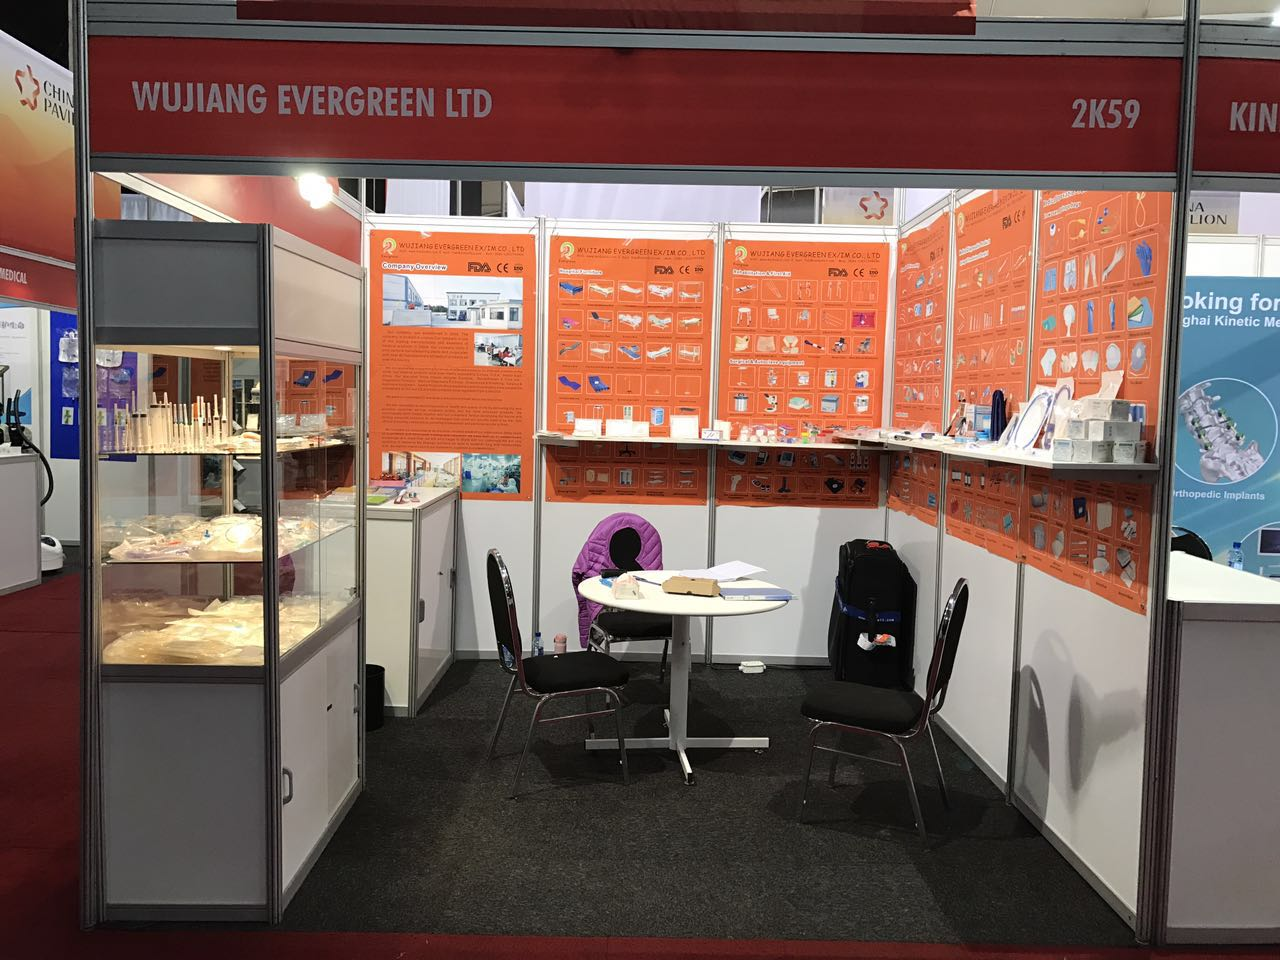 2017 south Africa Health at Johannesburg from 7th June to 9th Jun, 2017. Booth Number: Hall2K59.